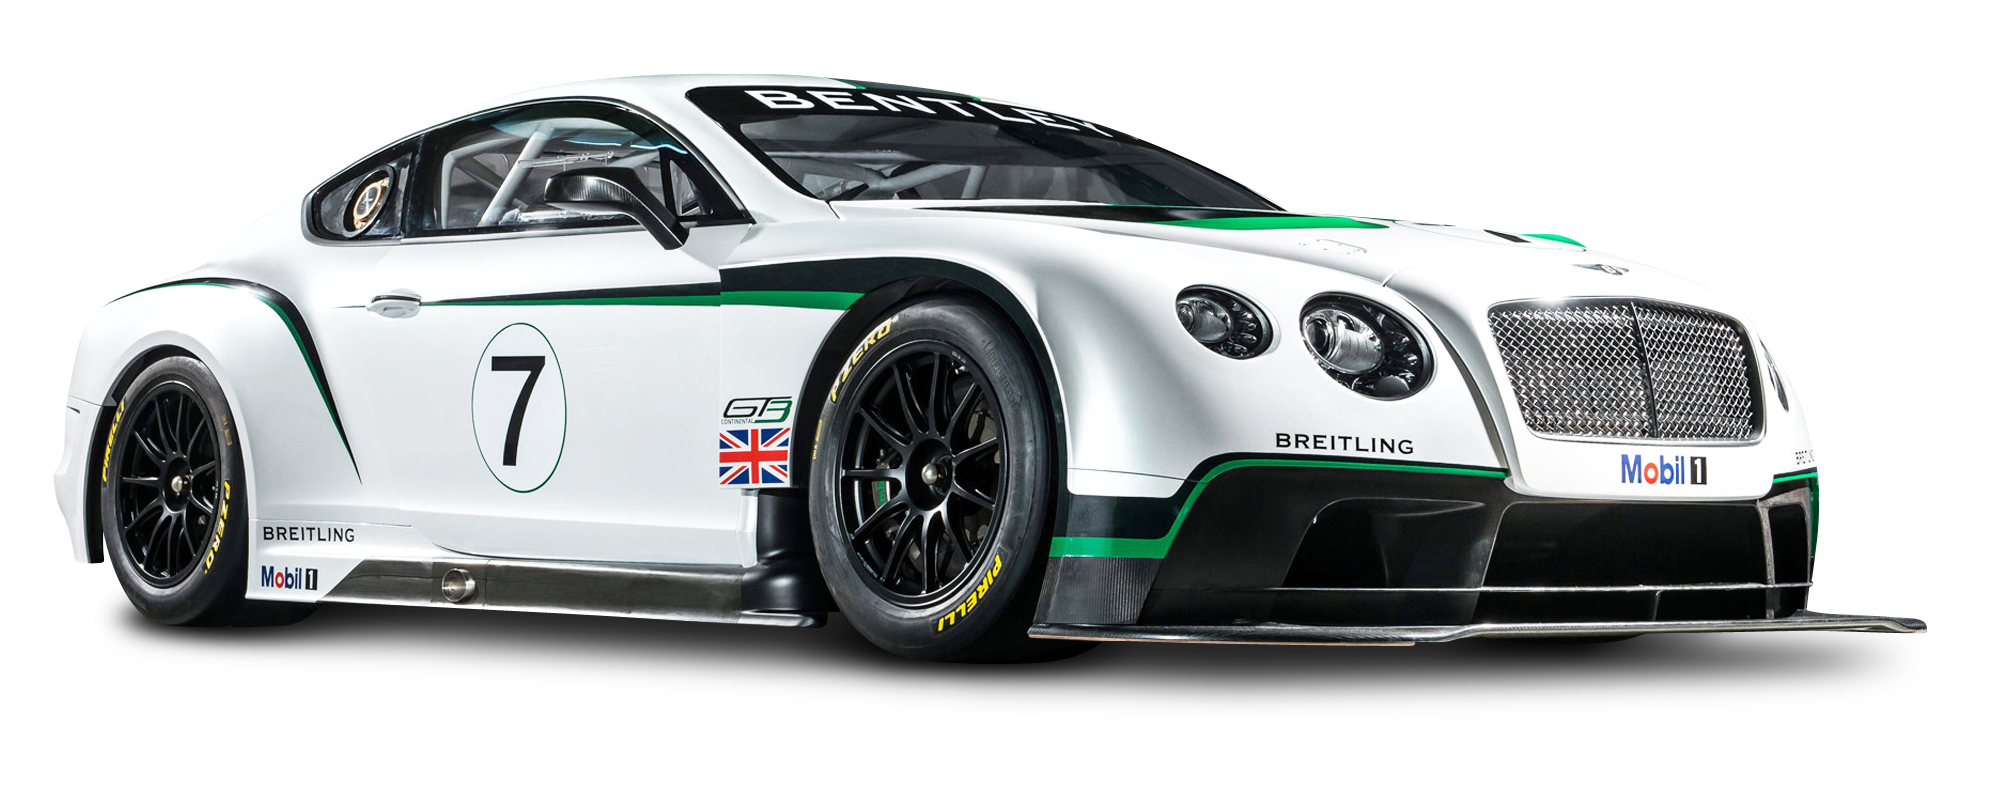 Bentley Continental GT3 R Racing Car PNG Image